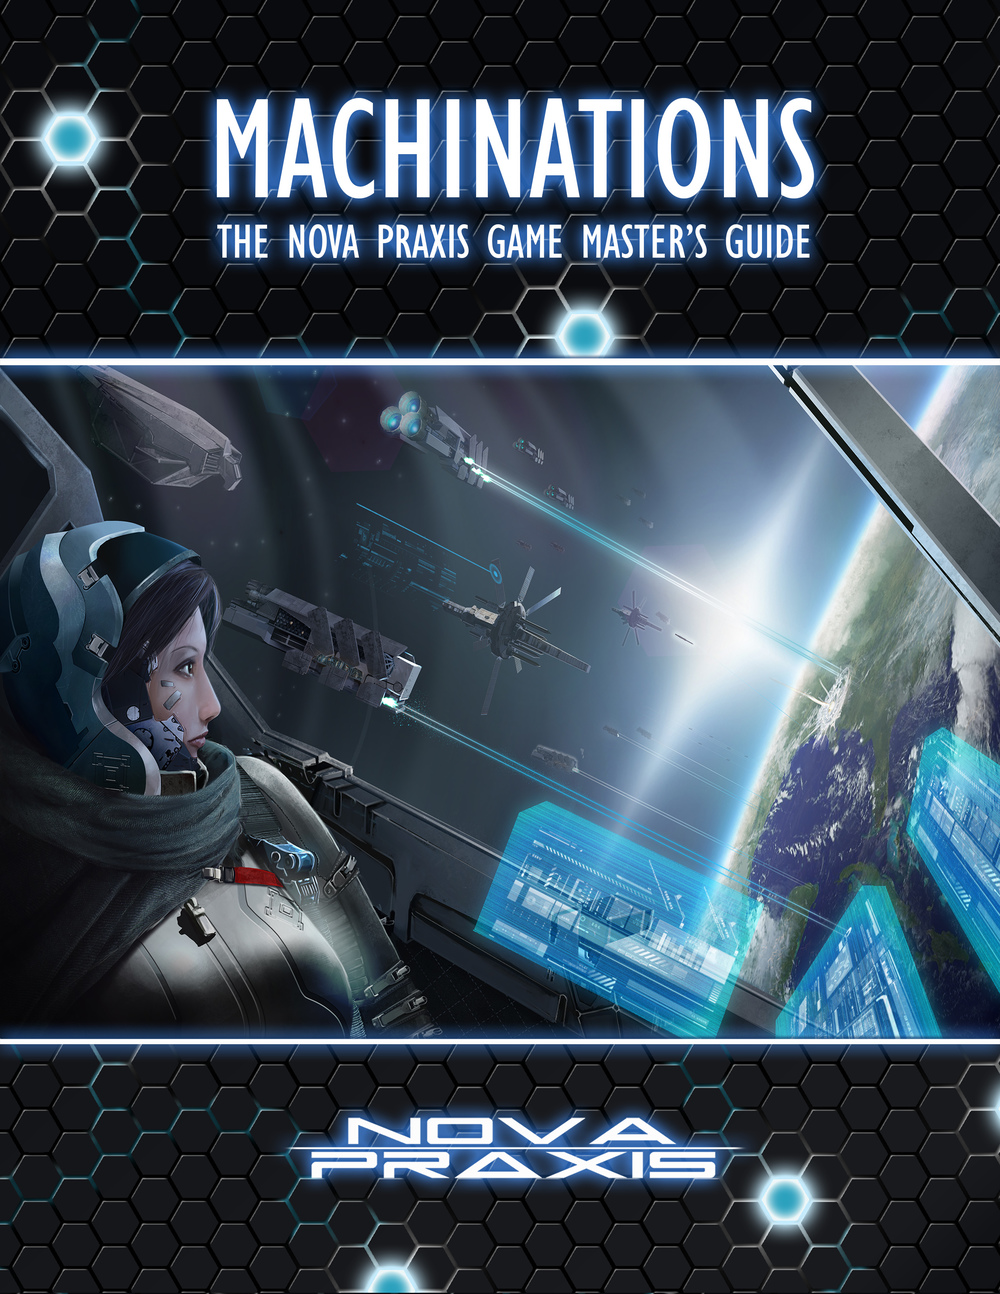 Early version of the cover art for Machinations.